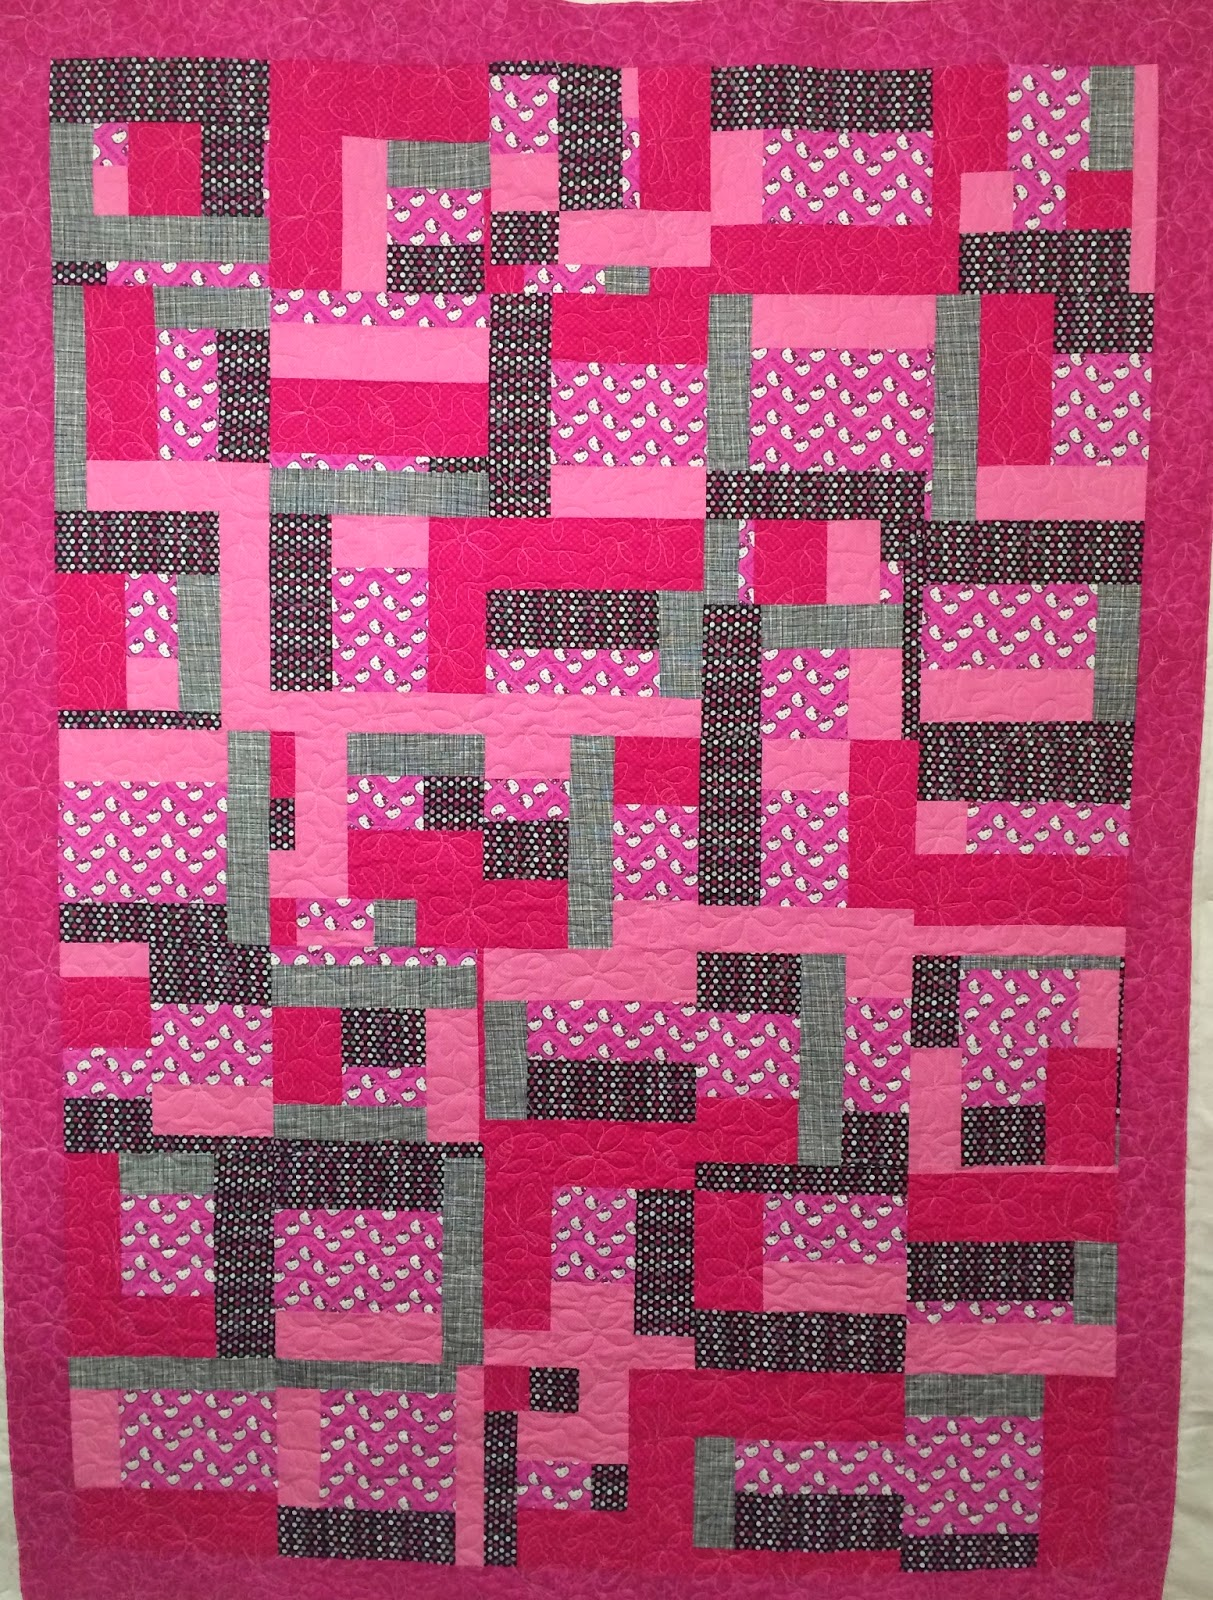 Kathy Moynihan's Hello Kitty Quilt